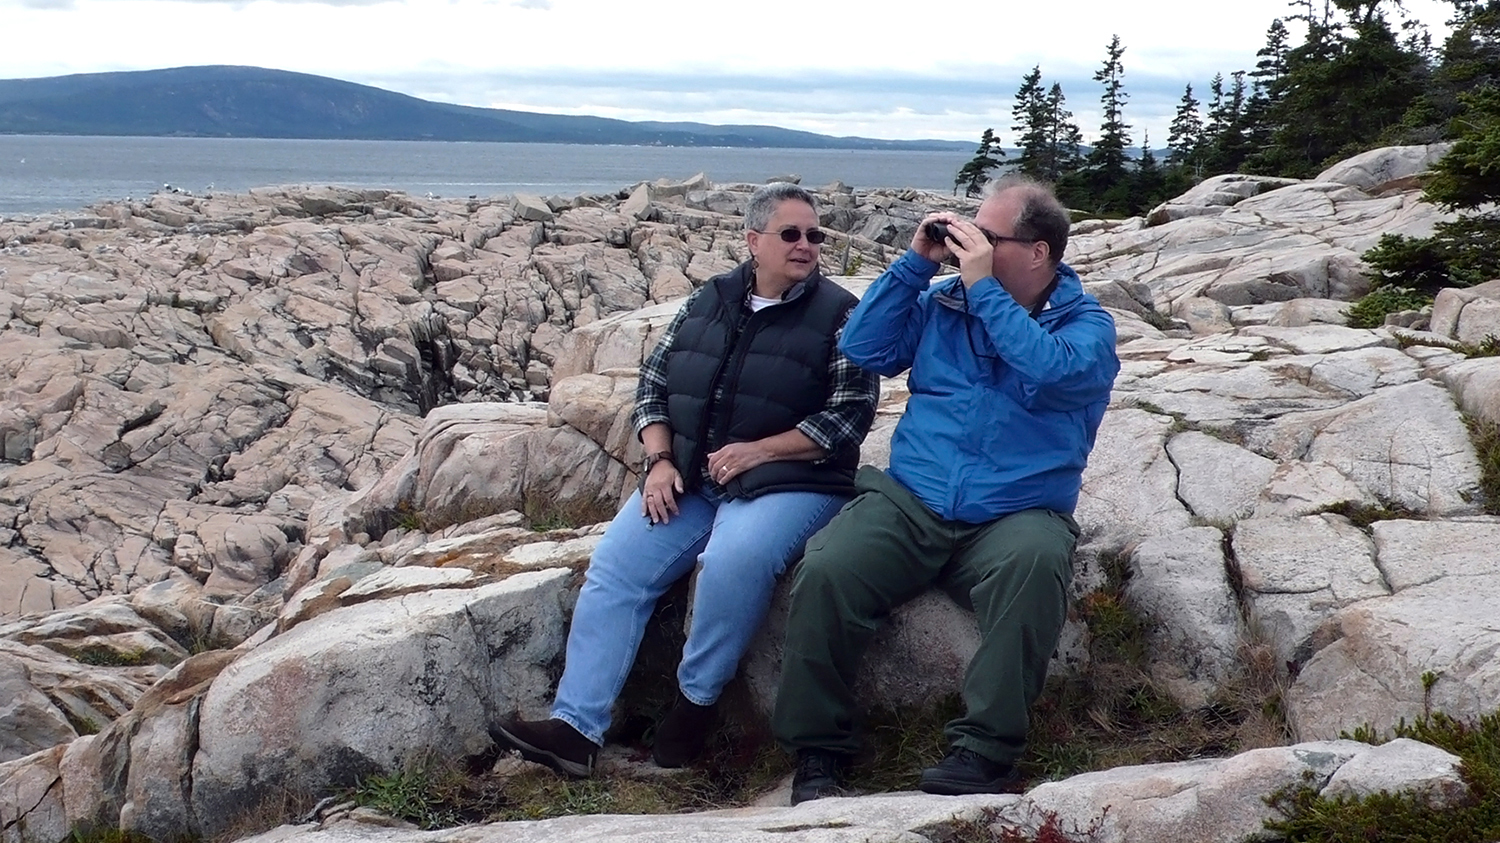 Sister and her brother with developmental disabilities visiting Acadia National Park in Maine.